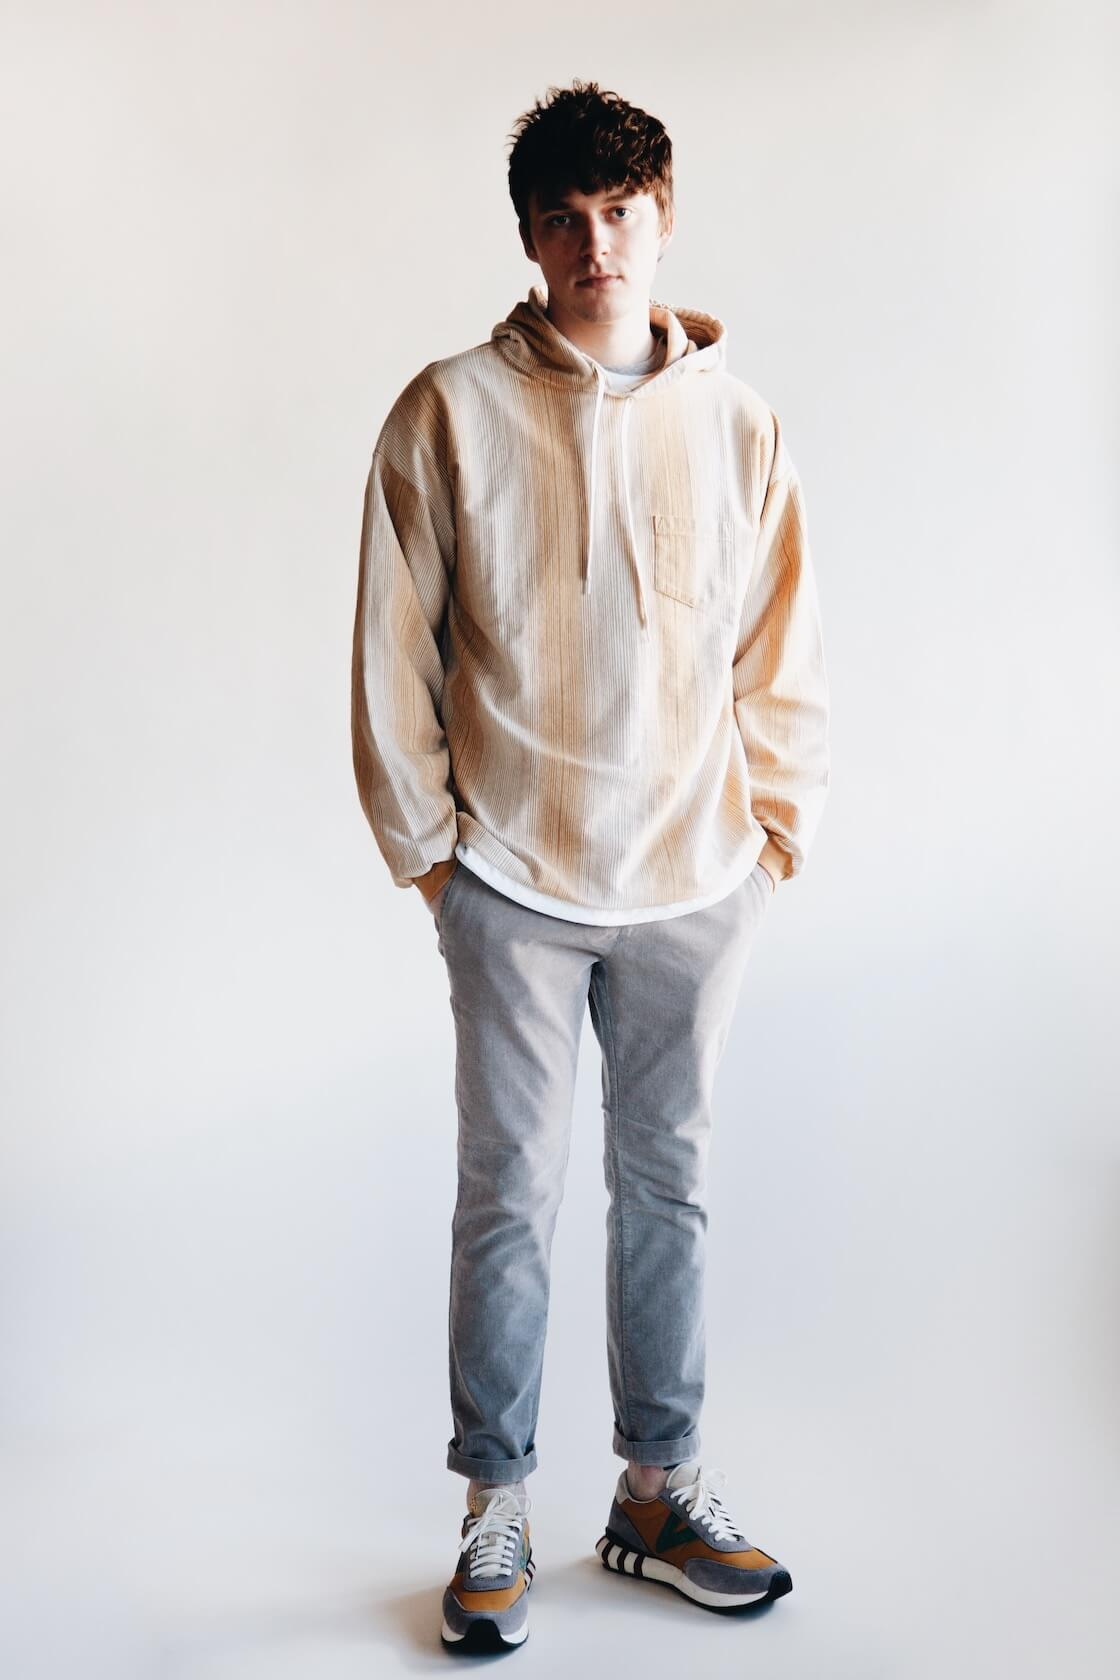 remi relief native print striped hoodie, remi relief stretched corduroy slacks and visvim attica trainer shoes on body